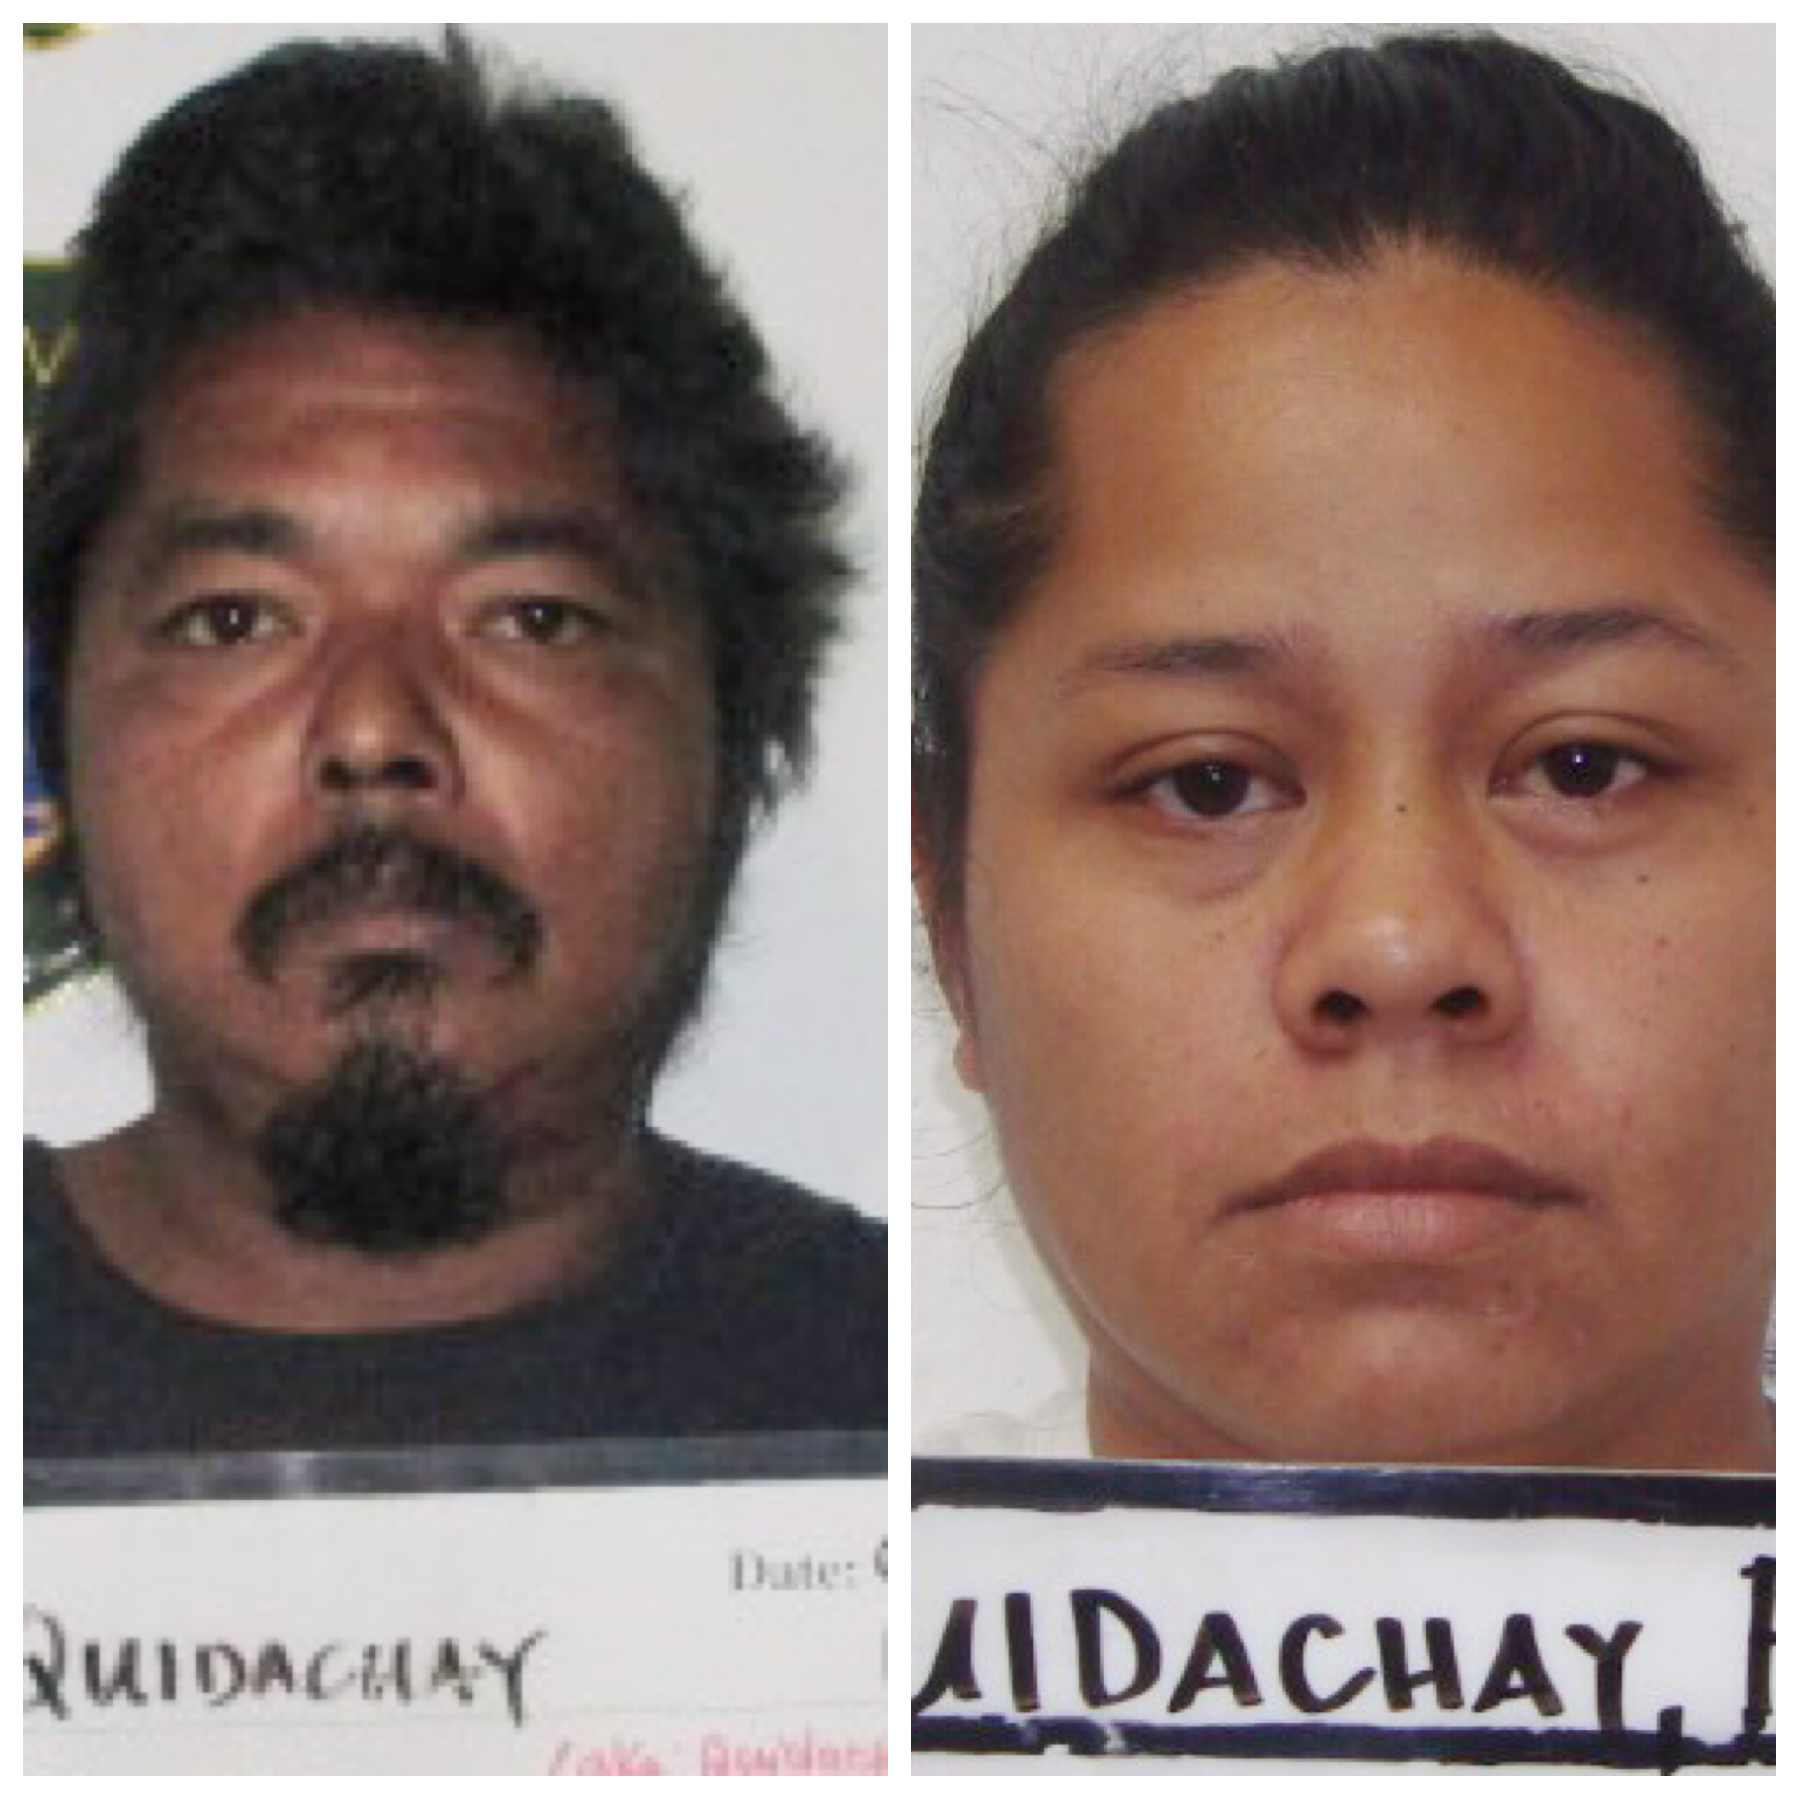 Tomas Junior Quidachay and Francine Cruz Quidachay charged with child abuse